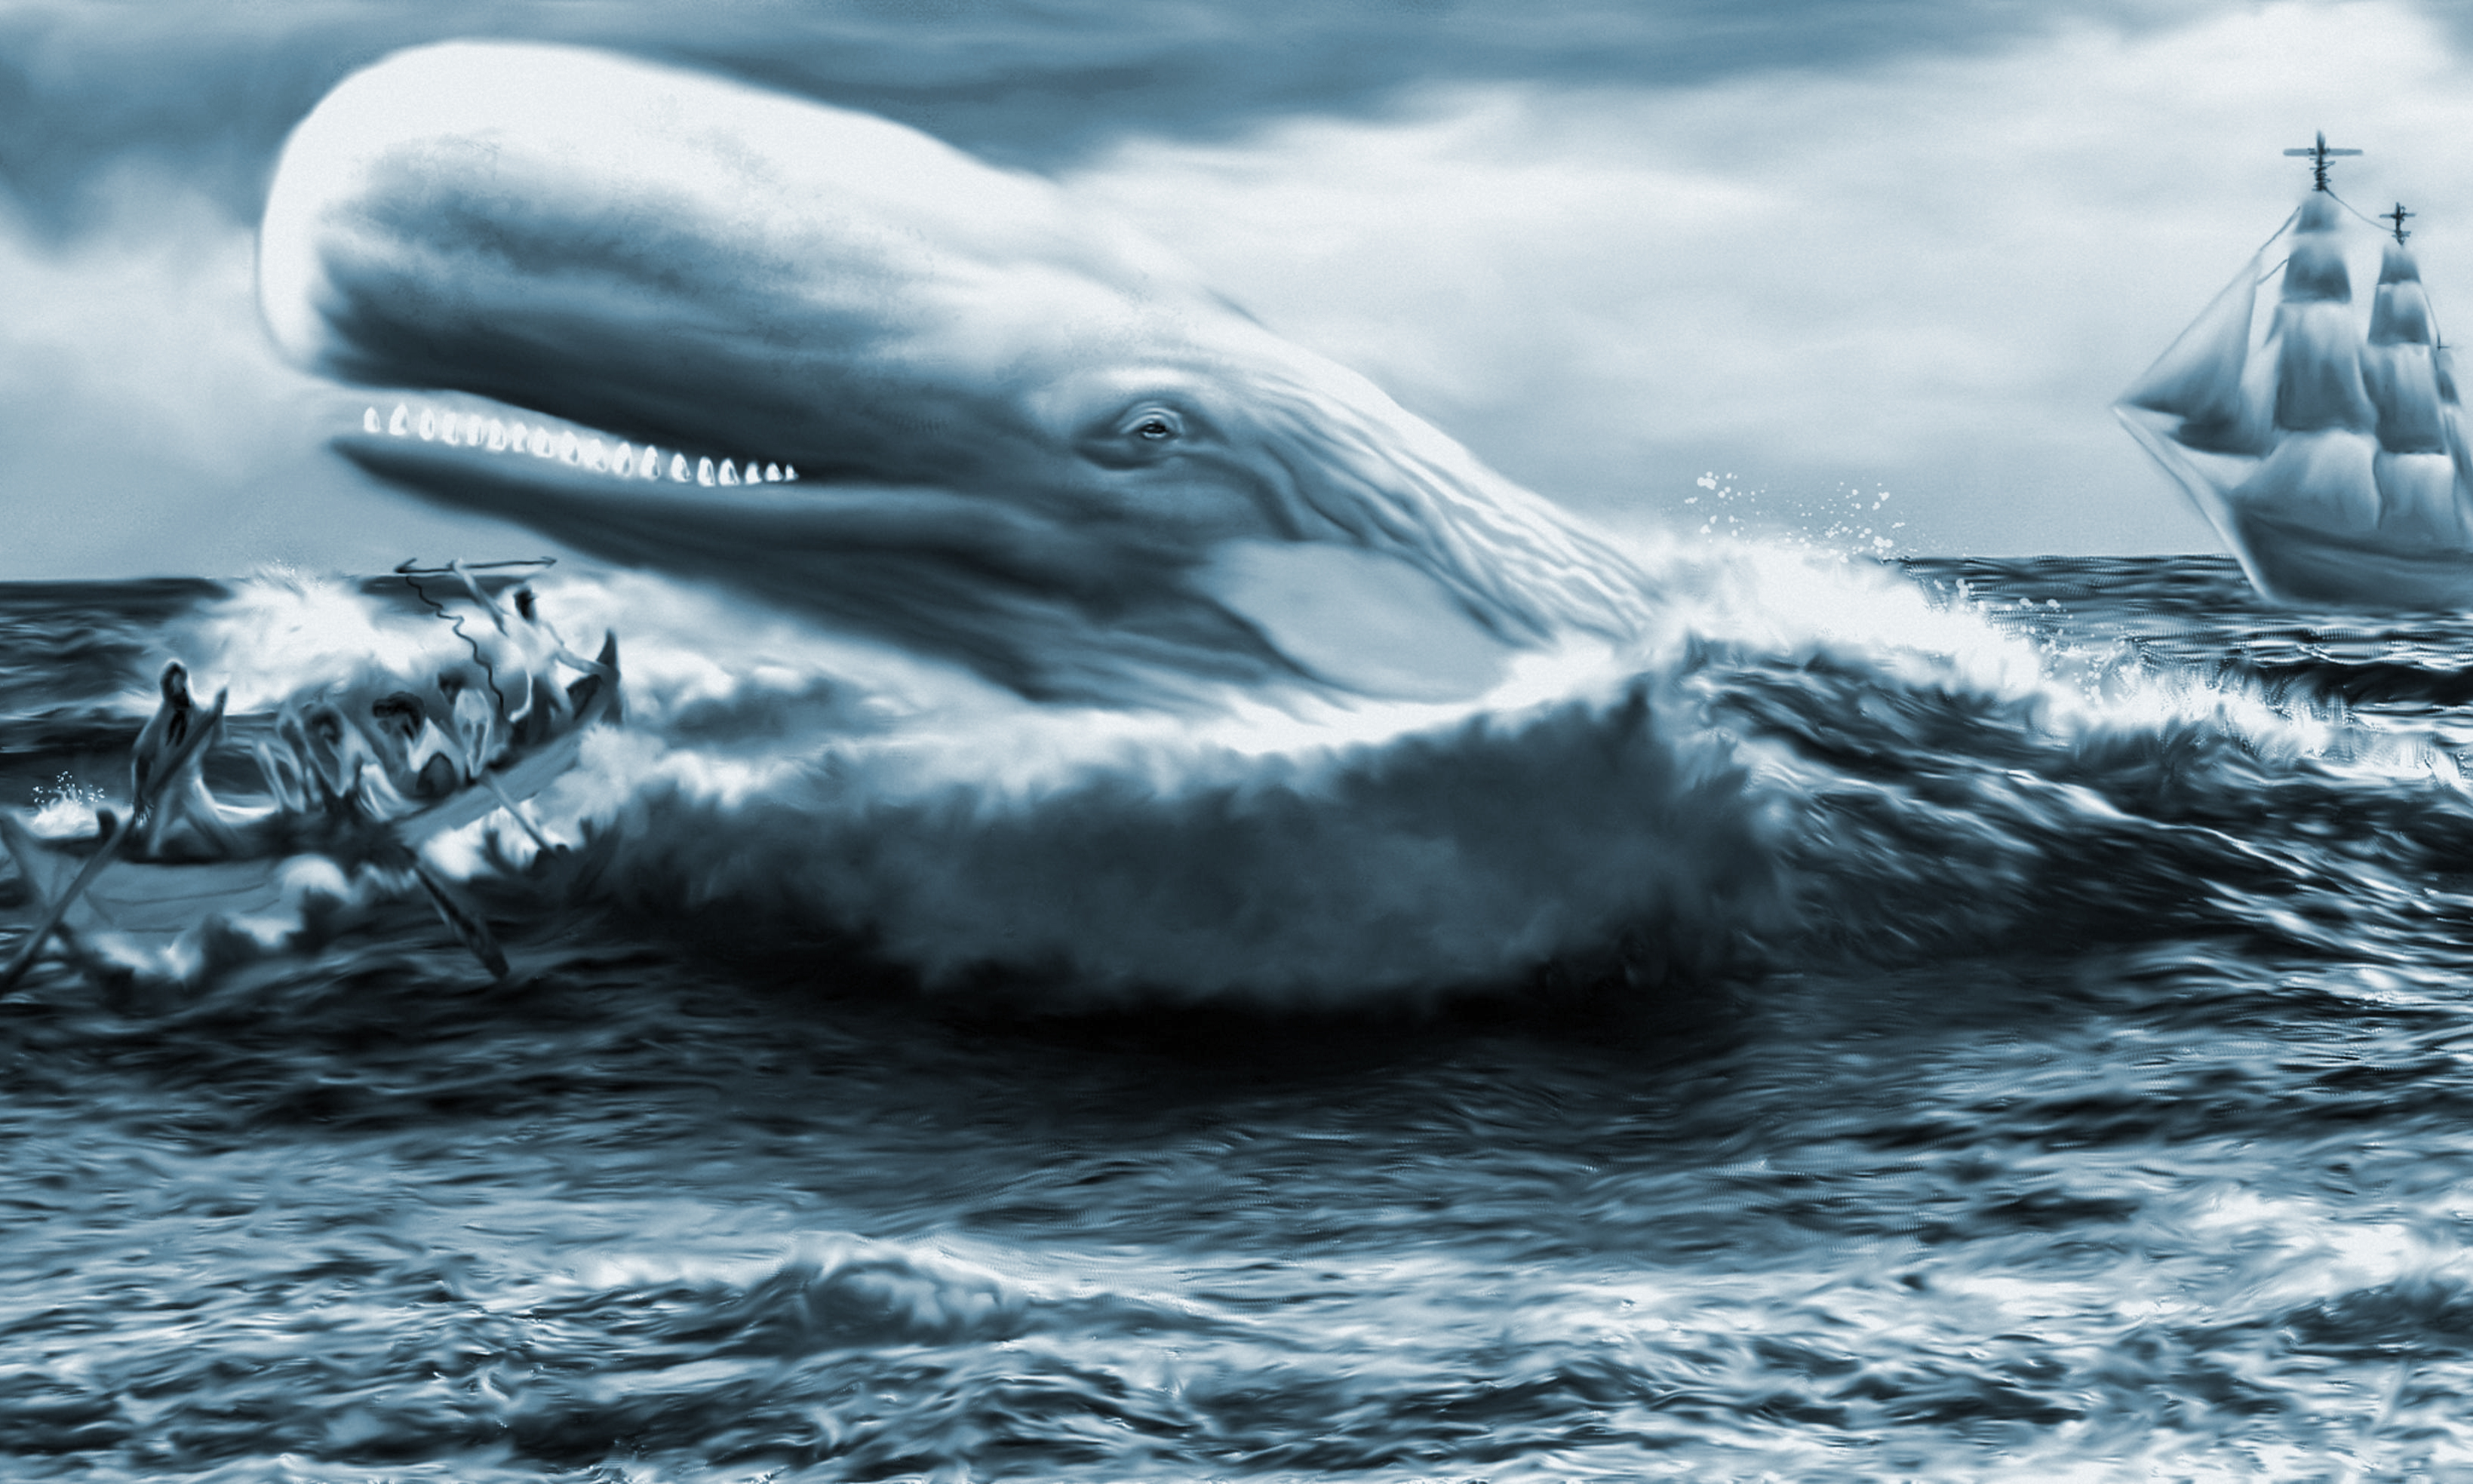 The hunt for the great white whale.